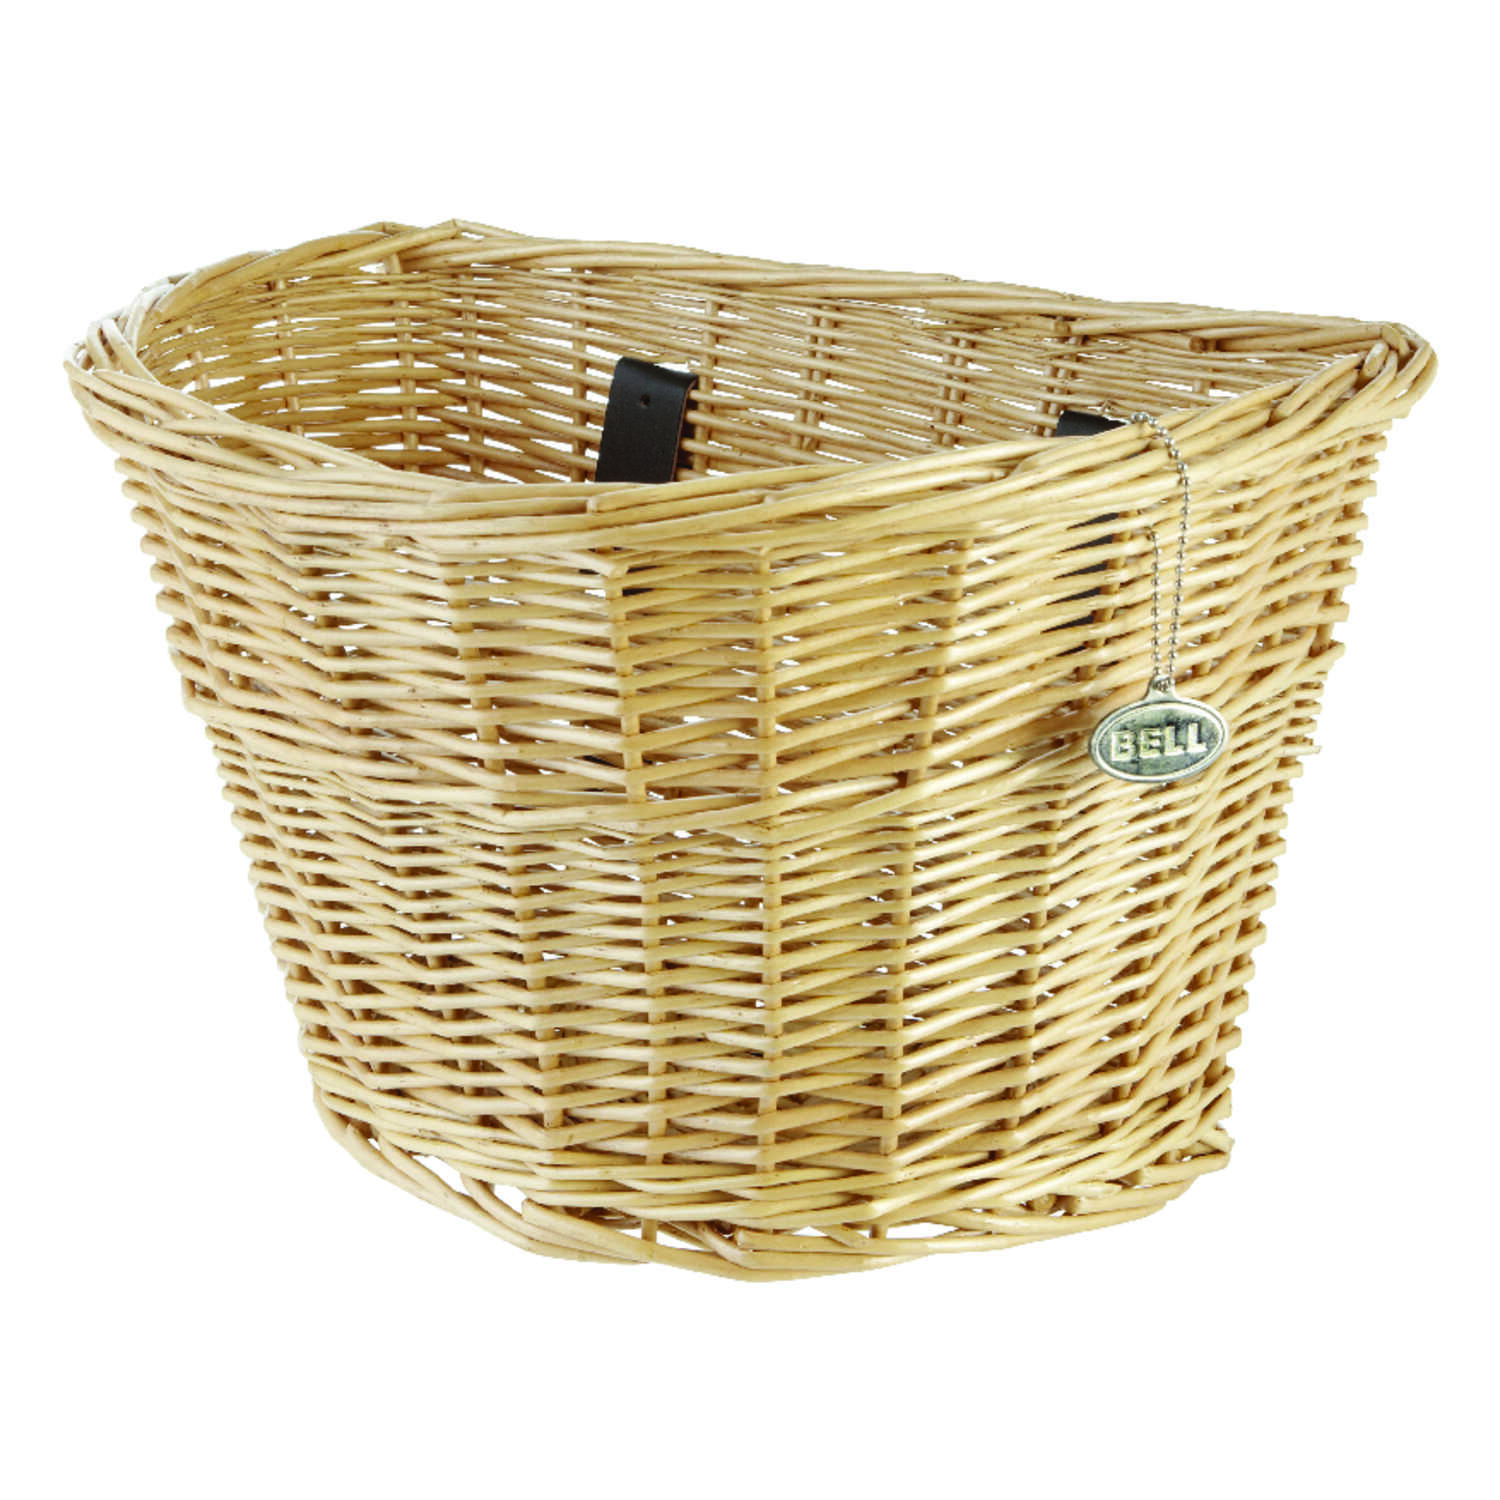 Bell Sports  Wicker  Bike Basket  Tan